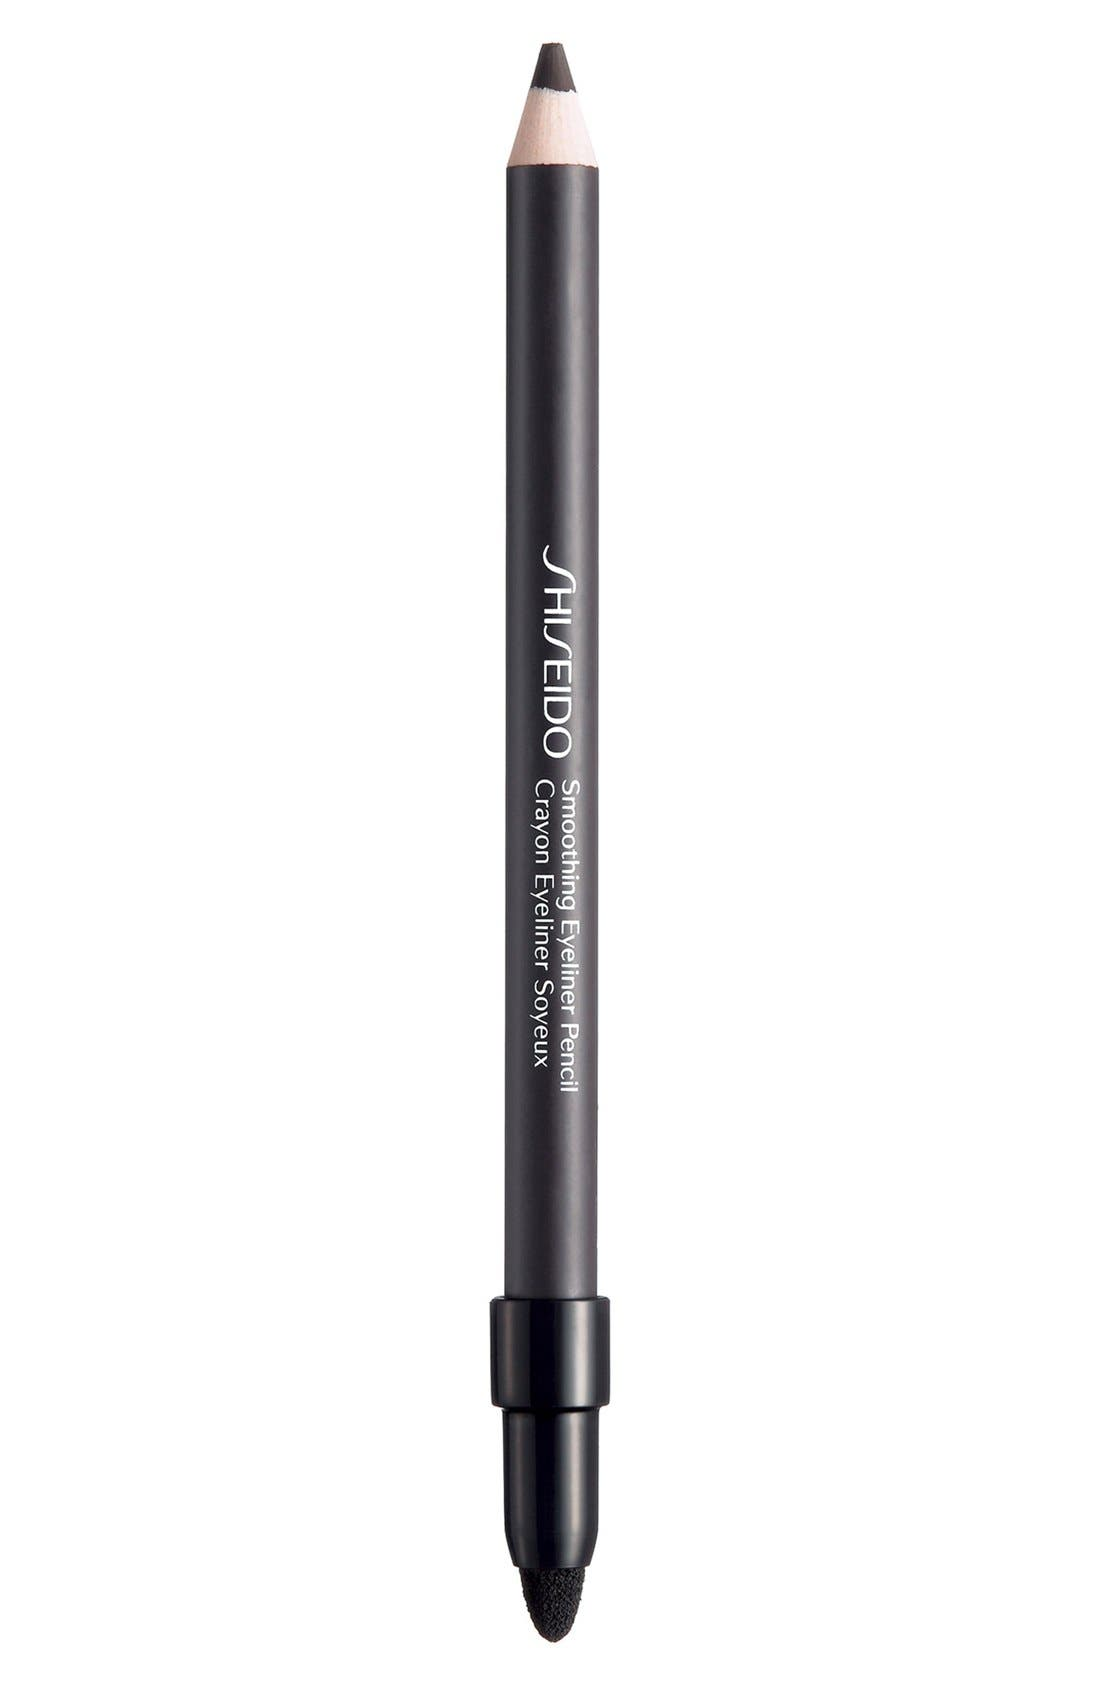 'The Makeup' Smoothing Eyeliner Pencil,                             Main thumbnail 2, color,